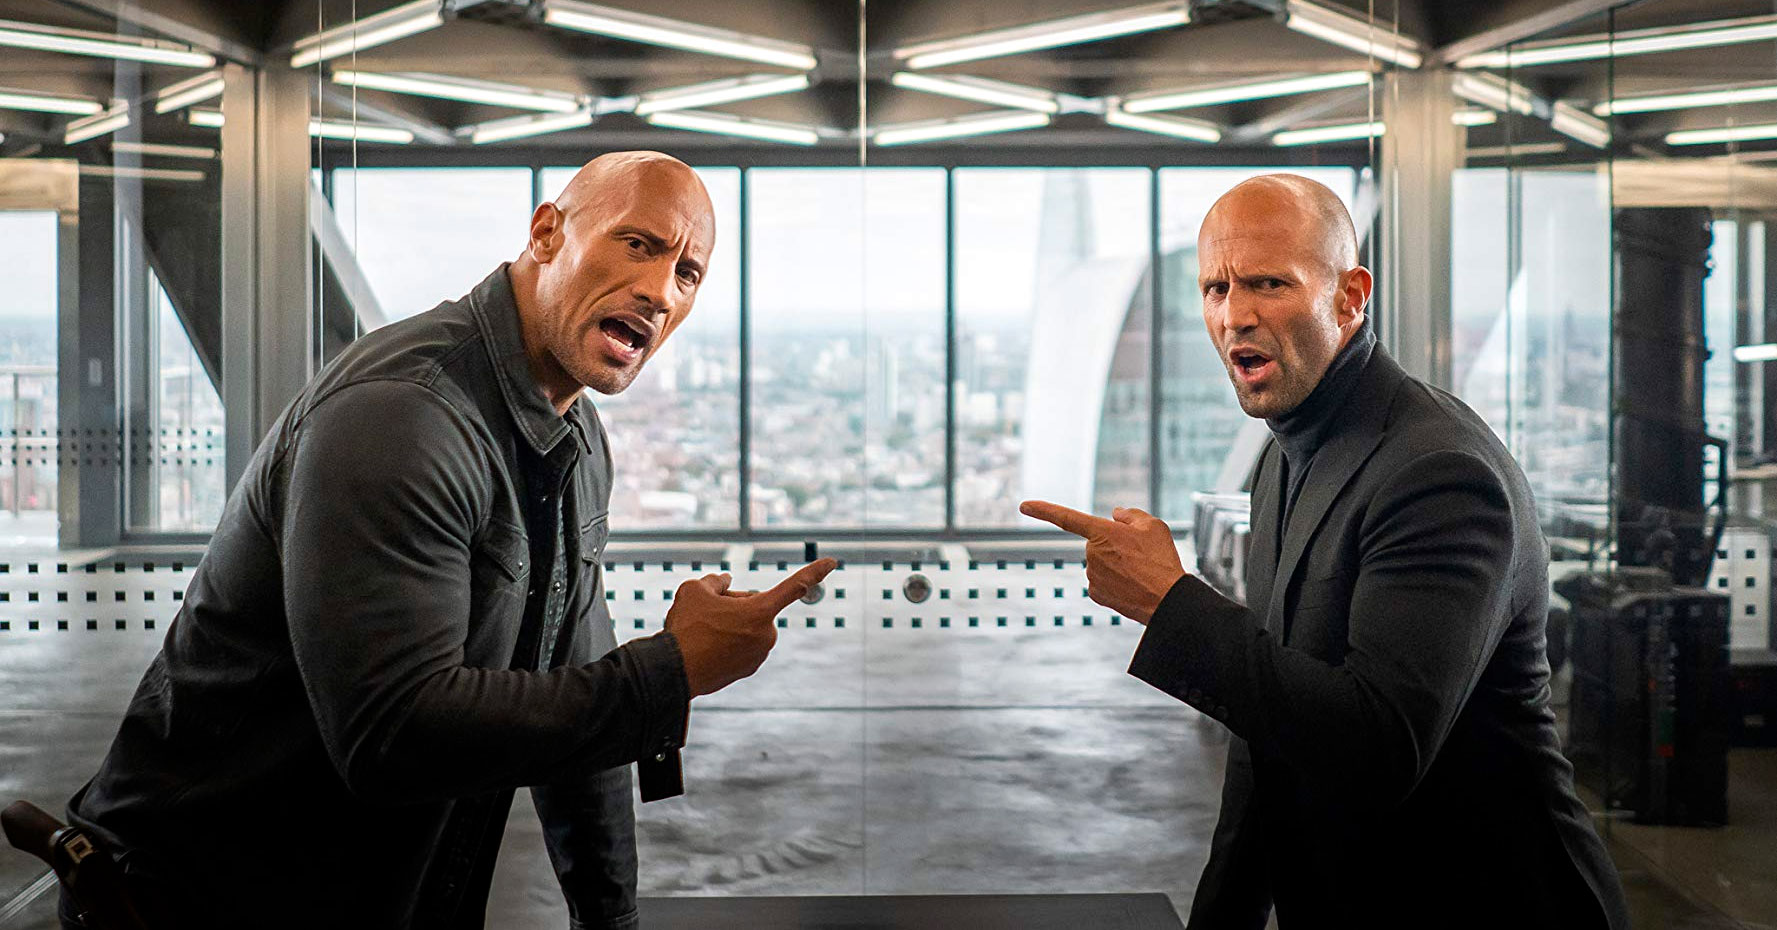 Hobbs & Shaw - Dwayne Johnson and Jason Statham